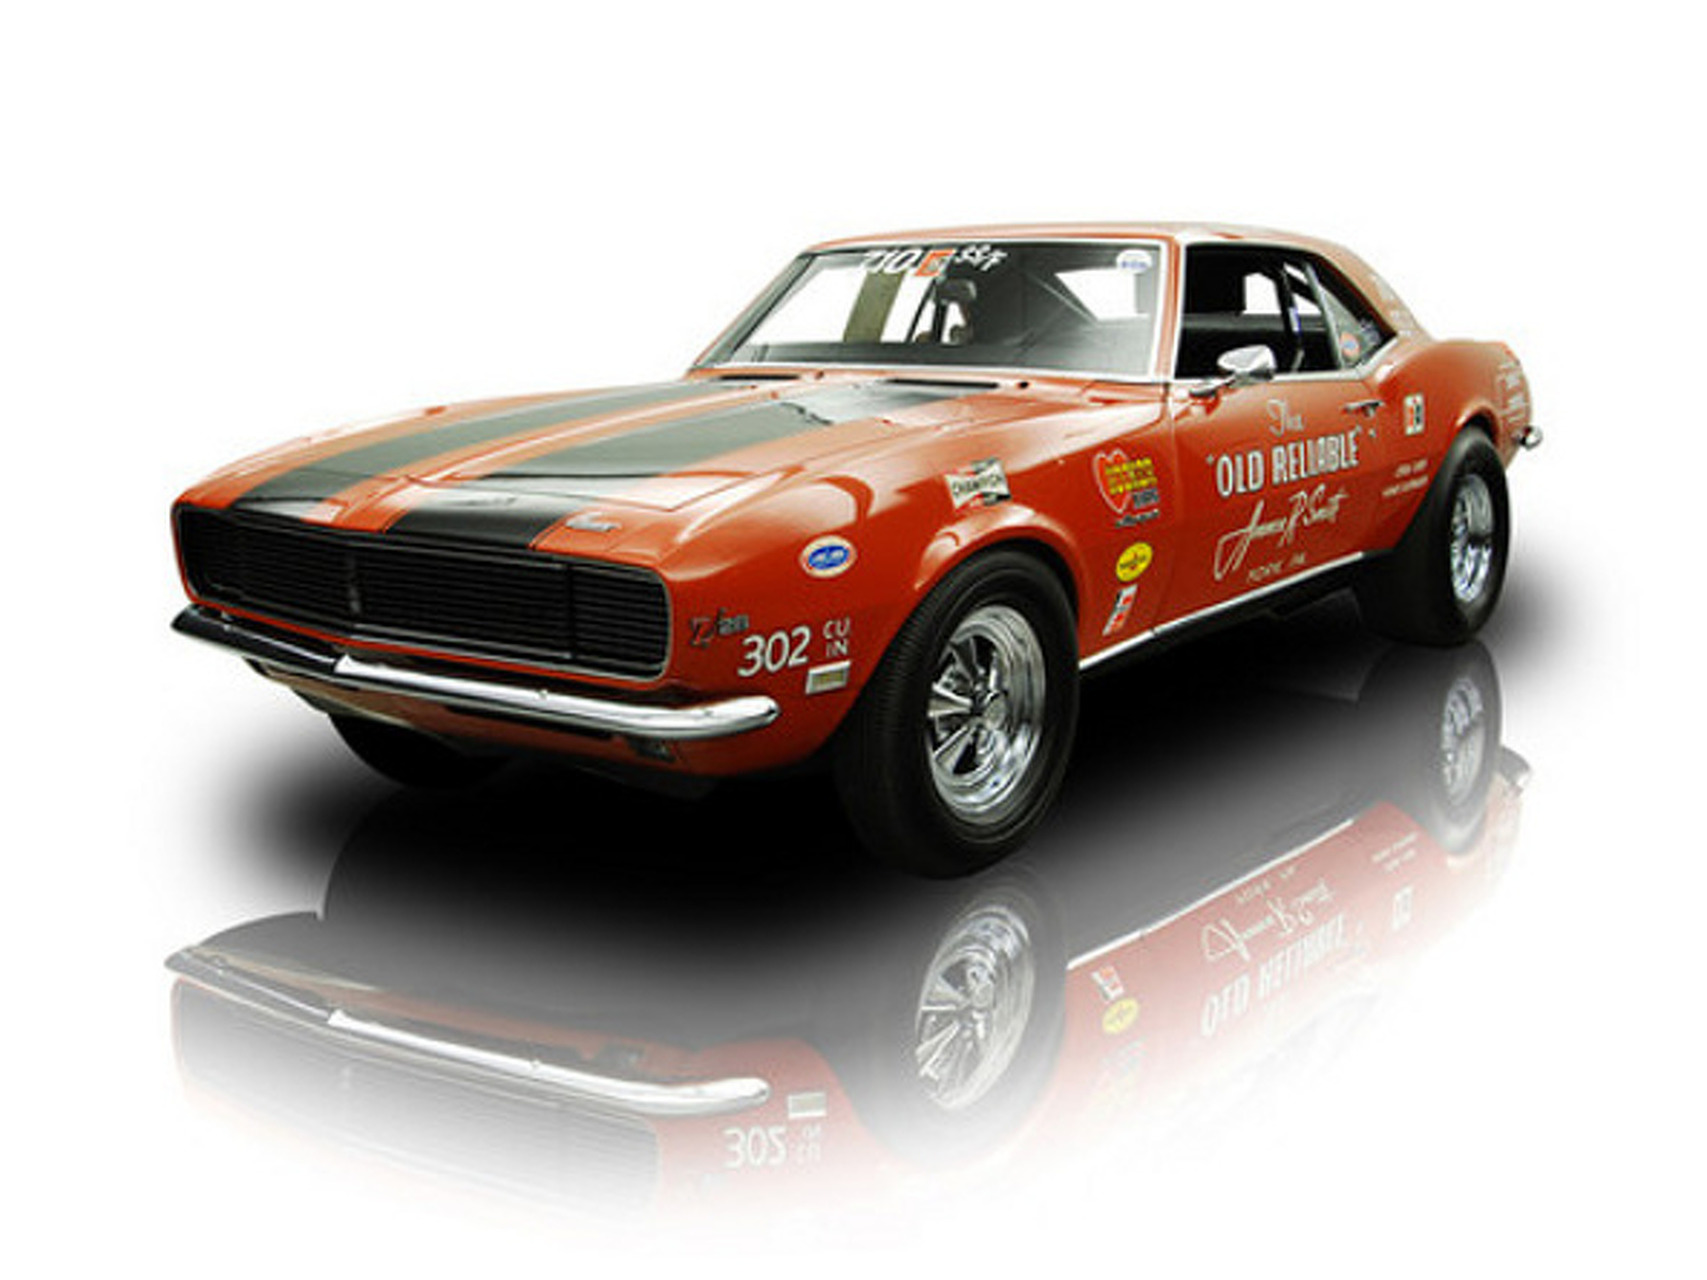 eBay Car of the Week: Super Stock Camaro Z/28